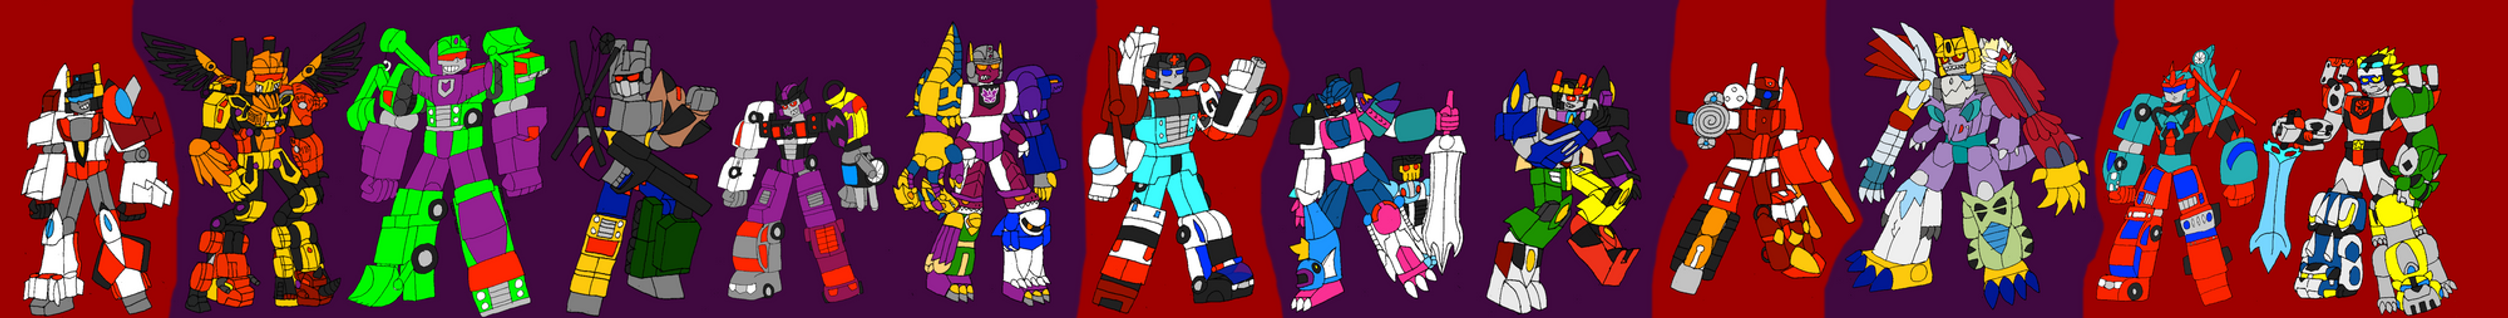 All Combiners, Second Coming by InvaderToum